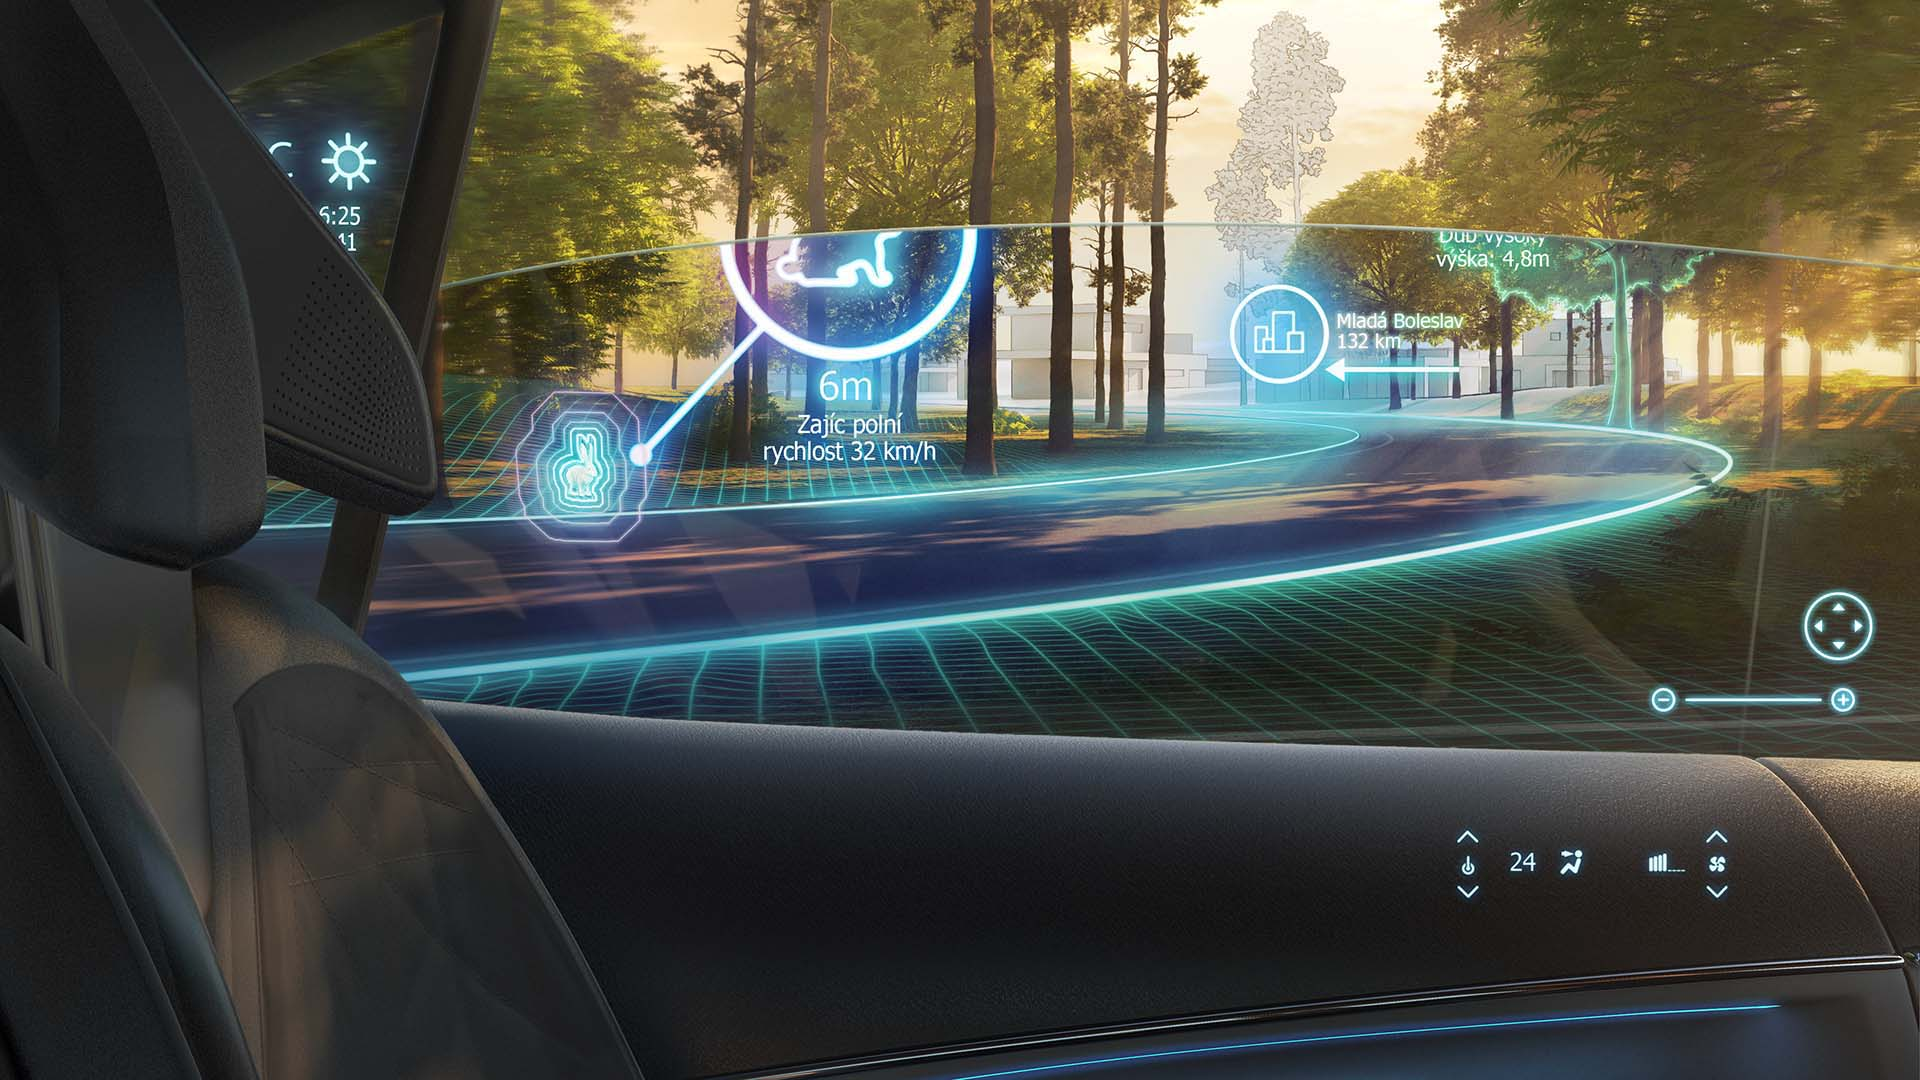 Skoda AR Visual